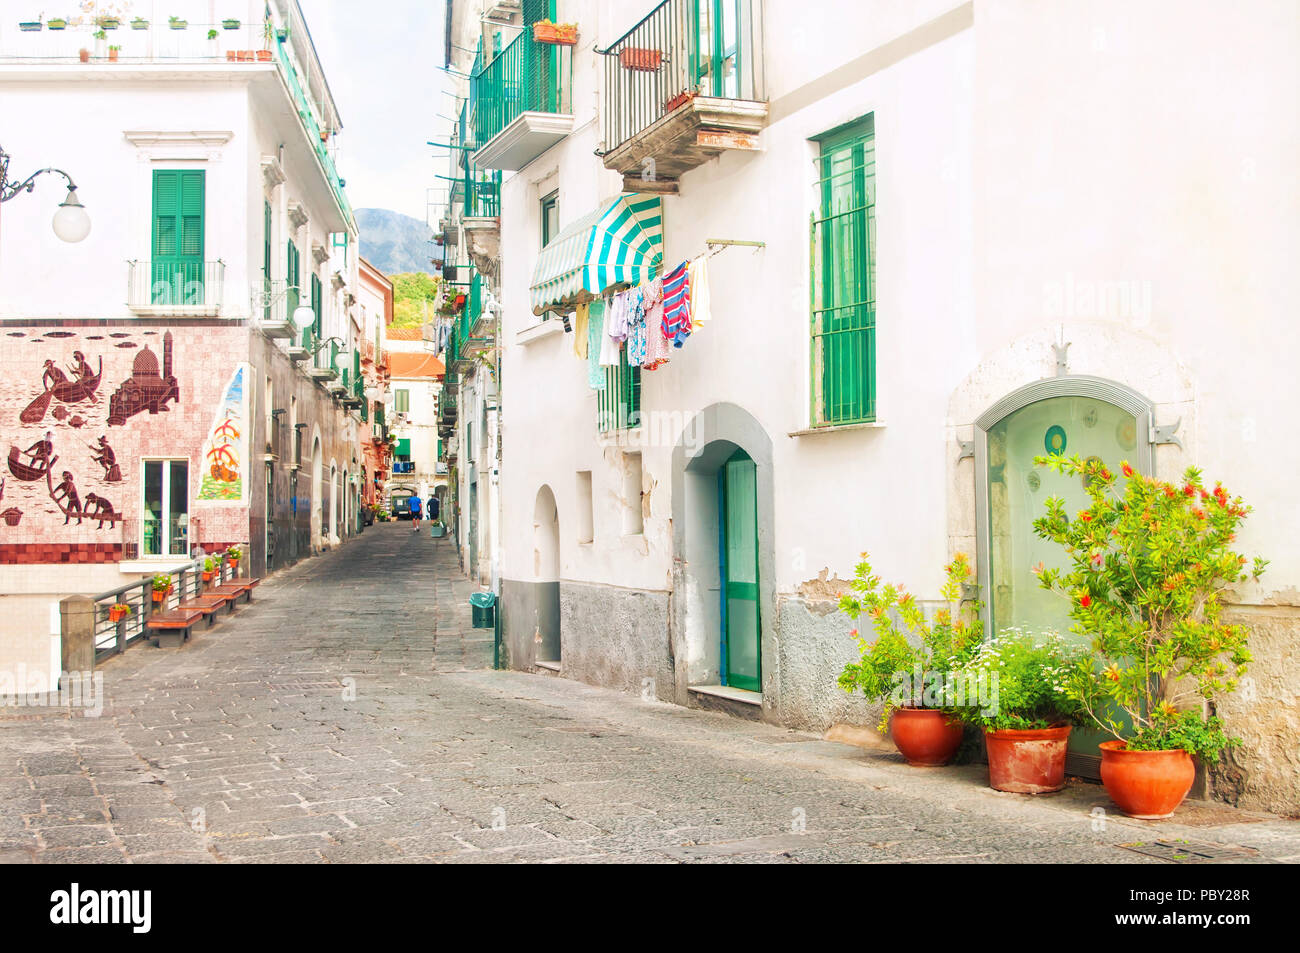 narrow street in small Italian town famous for its ceramic decoration on walls with flower pots and linen hanging on balcony Stock Photo